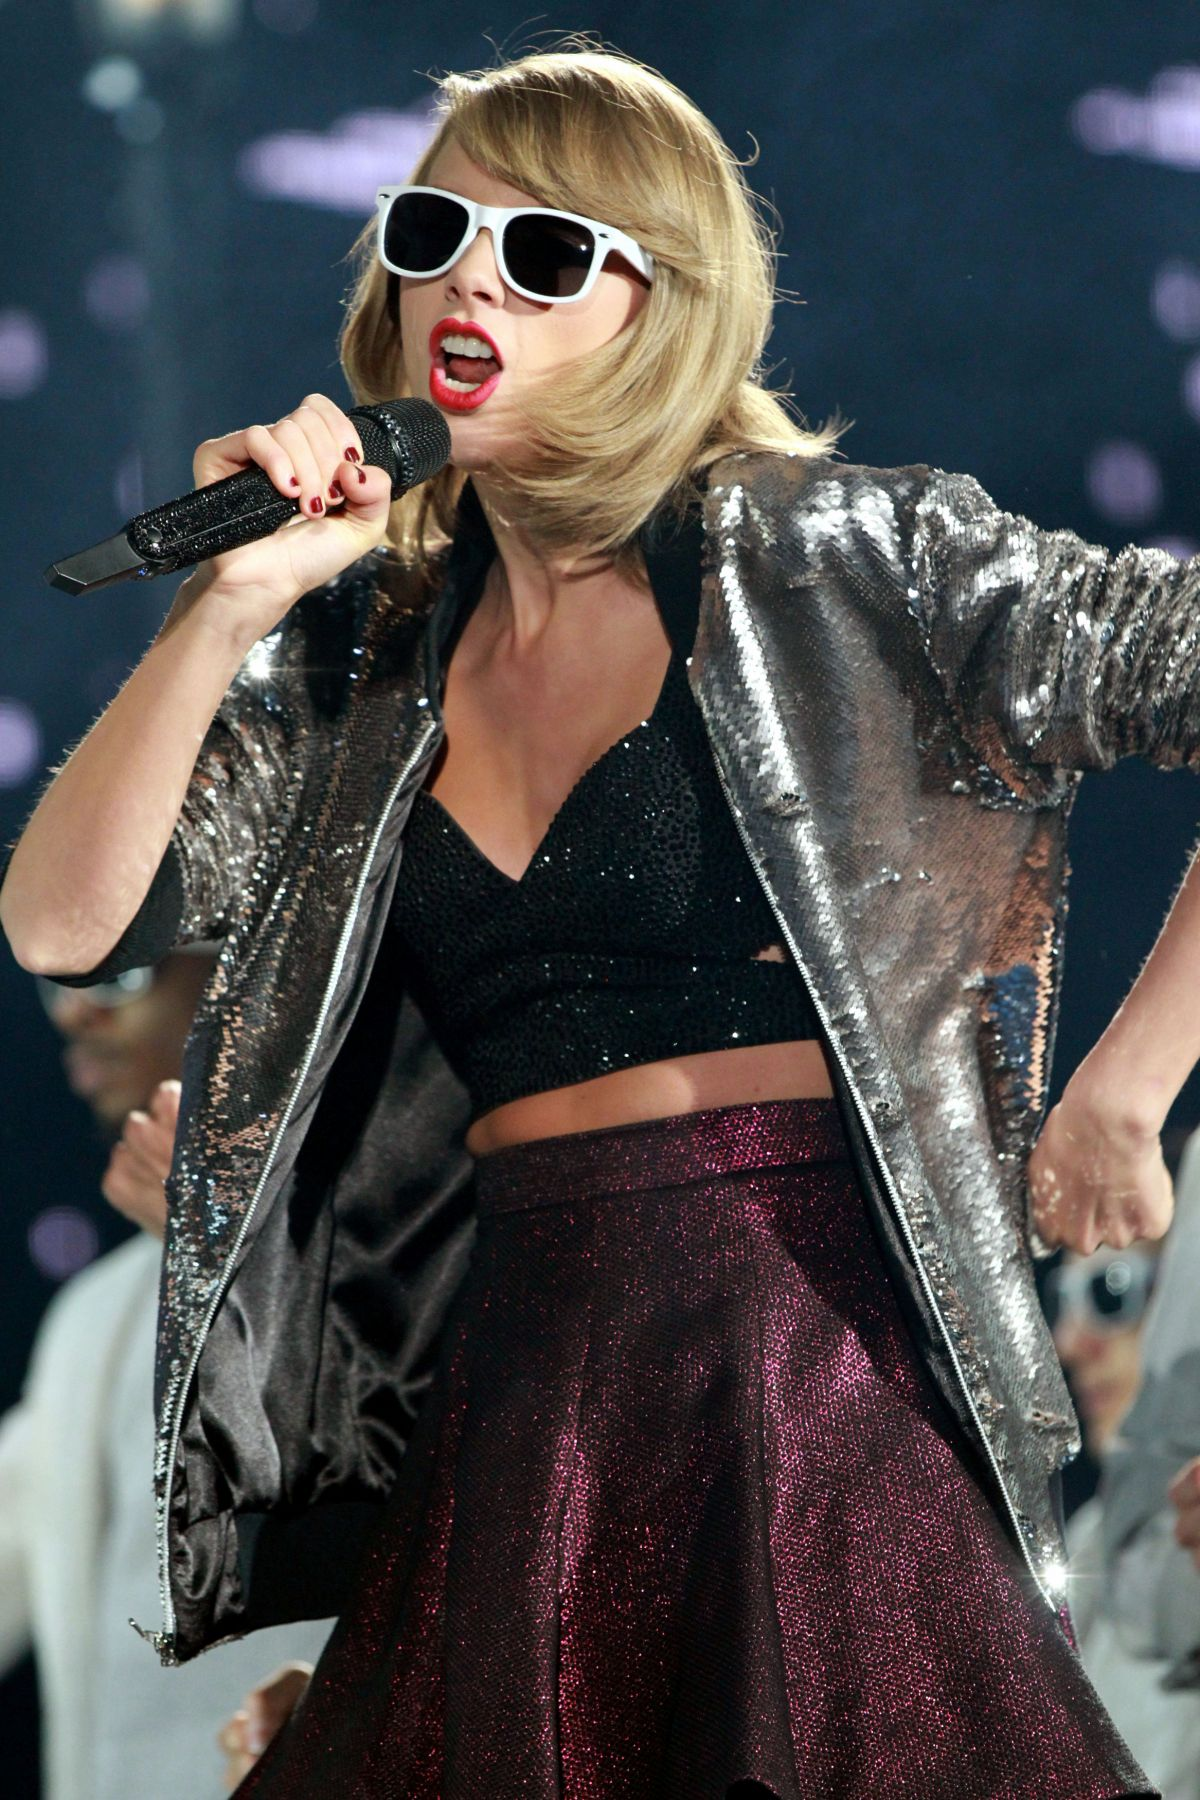 taylor-swift-and-tove-lo-performs-at-the-1989-world-tour-in-atlanta-10-24-205_9